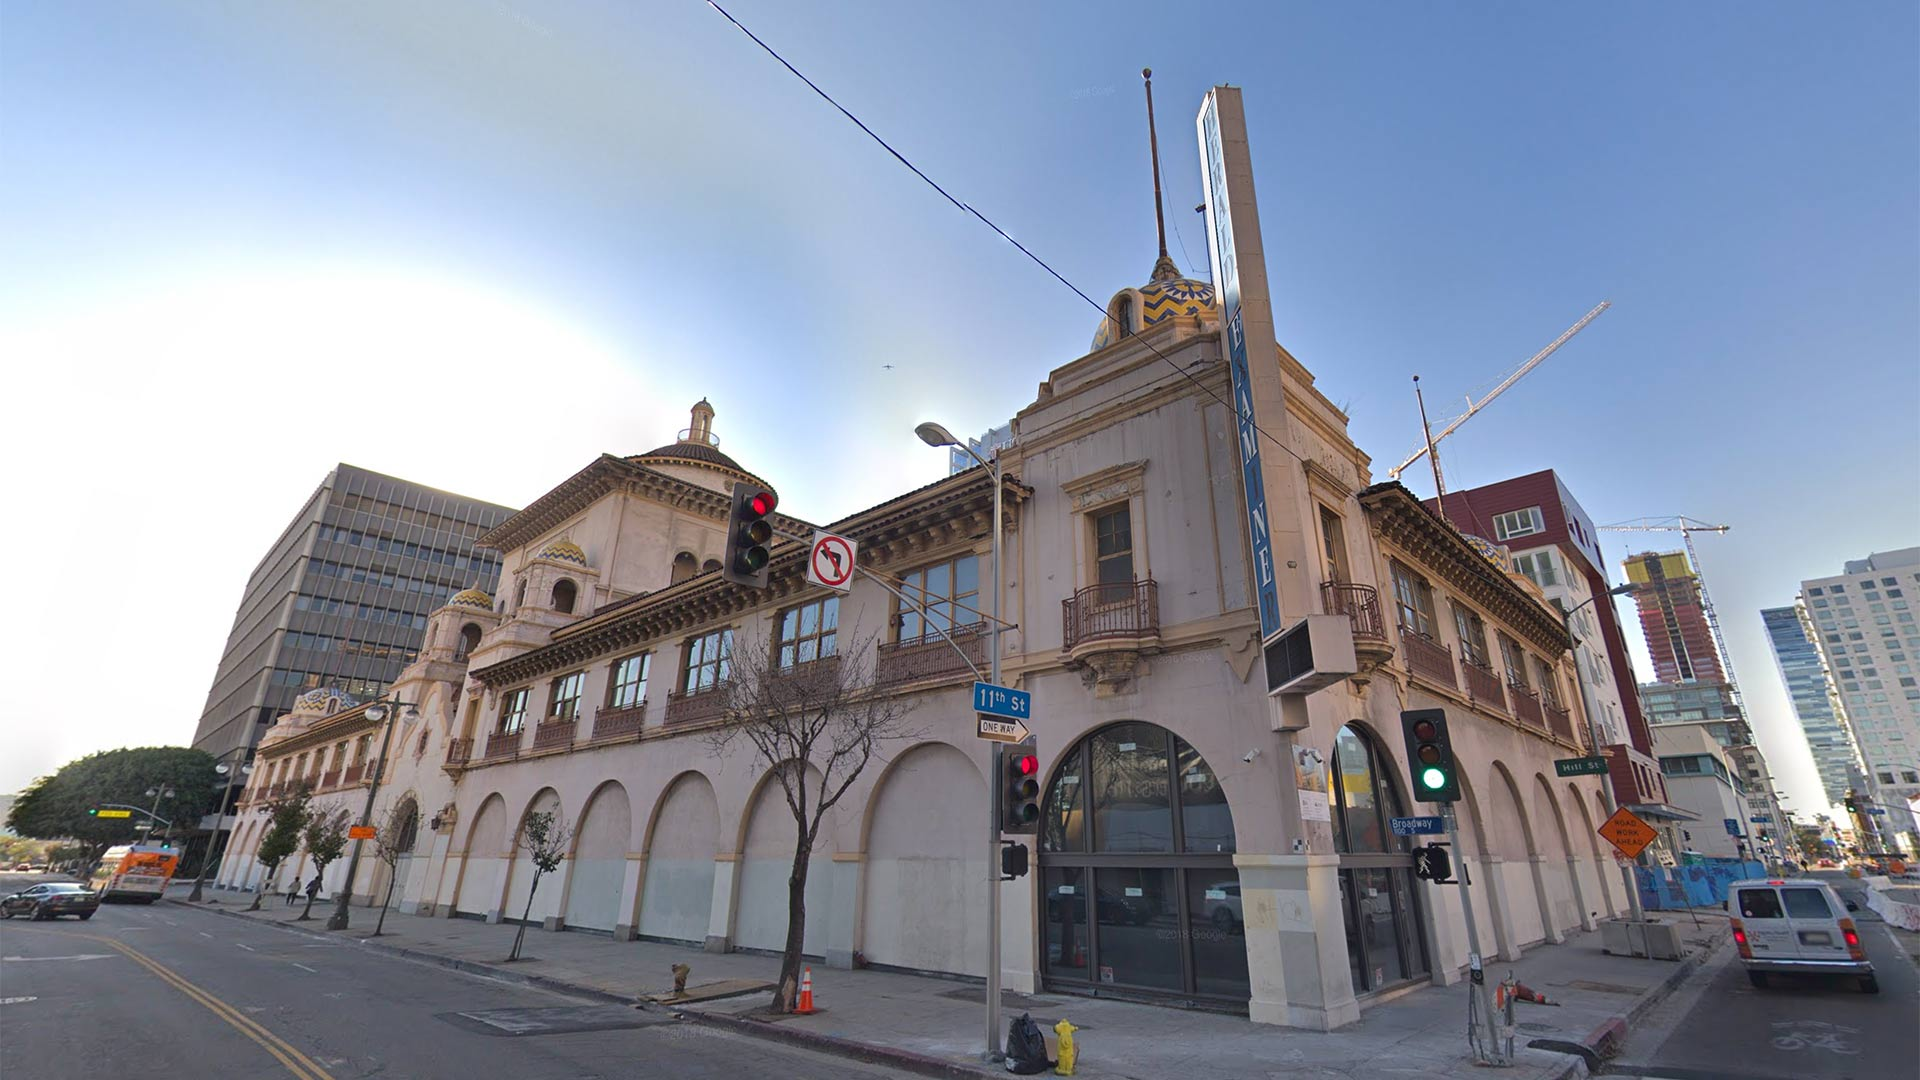 Google Street View image of the Los Angeles Herald Examiner Building.